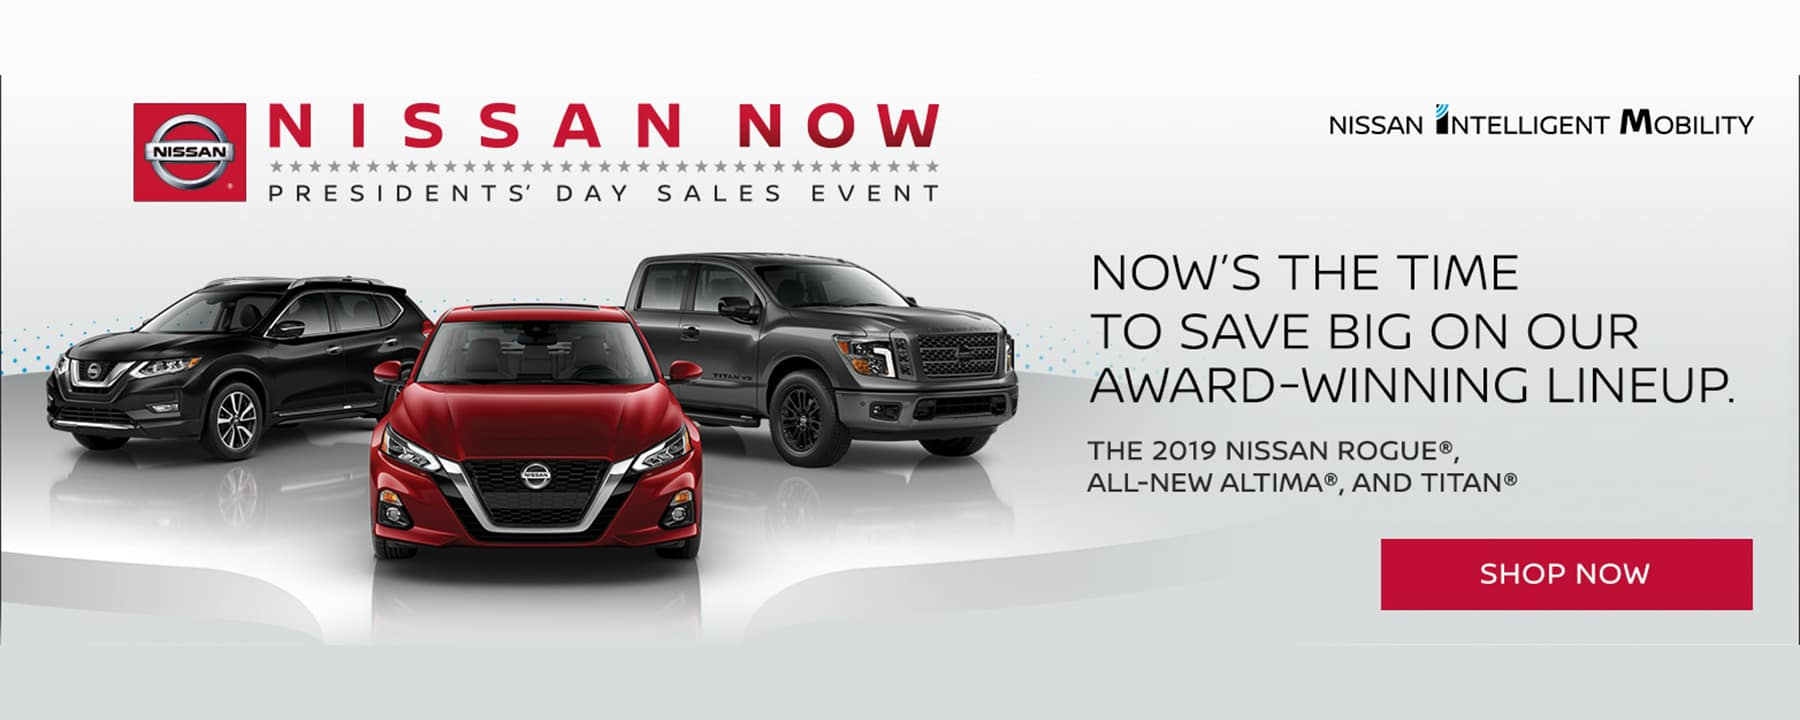 President's Day Sale Event at Berman Nissan of Chicago!